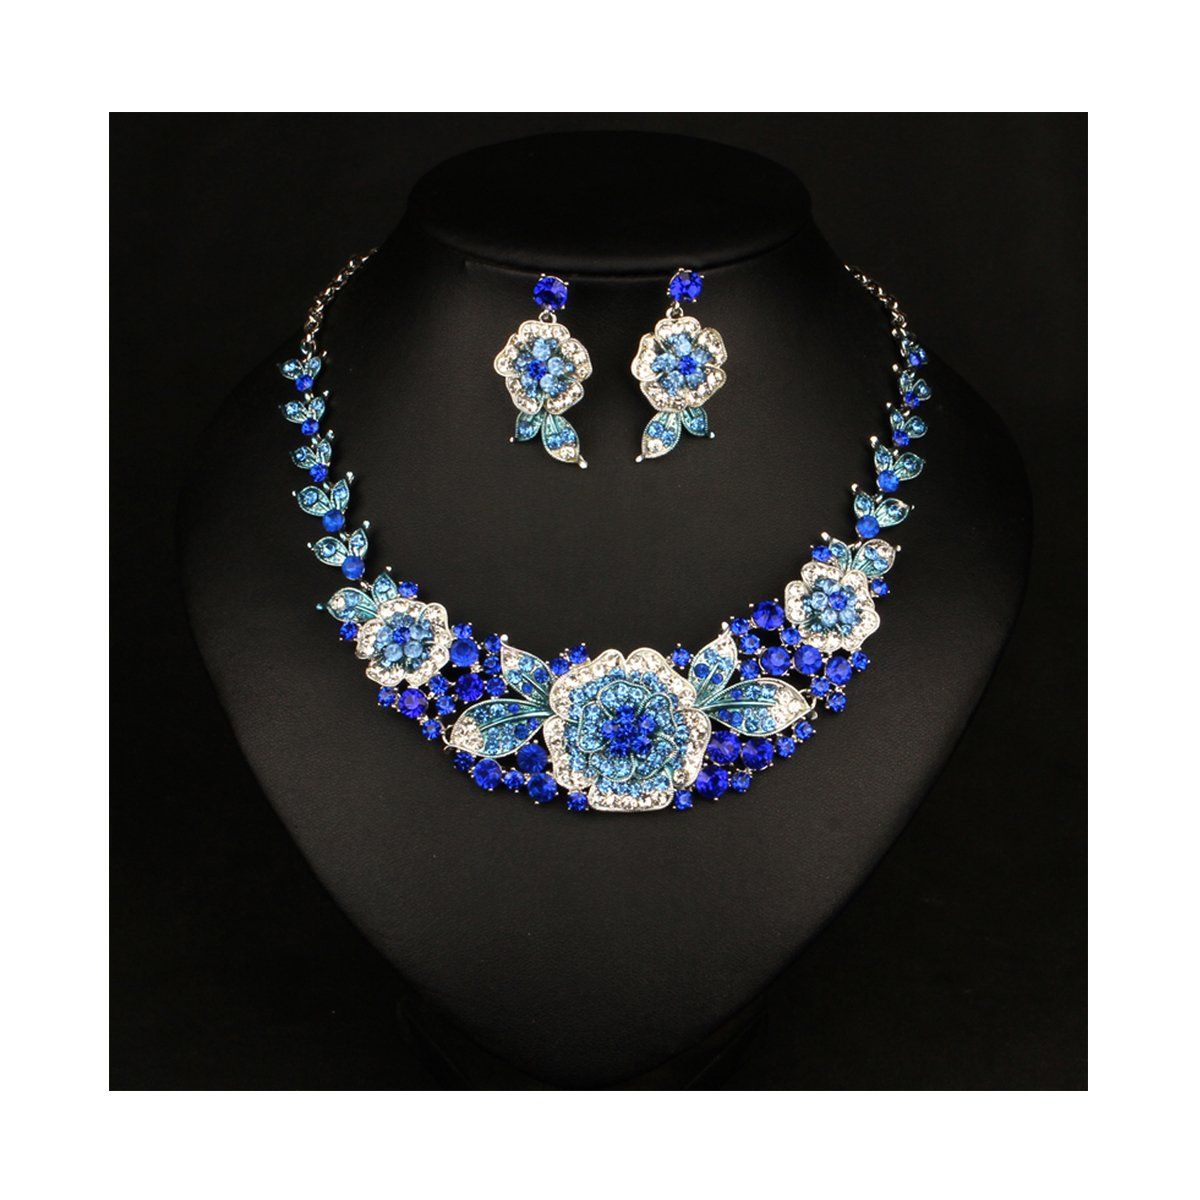 ENUUNO Costume jewelry Flowers Crystal Choker Pendant Statement Chain Charm Necklace and Earrings Sets Women (Blue, alloy)